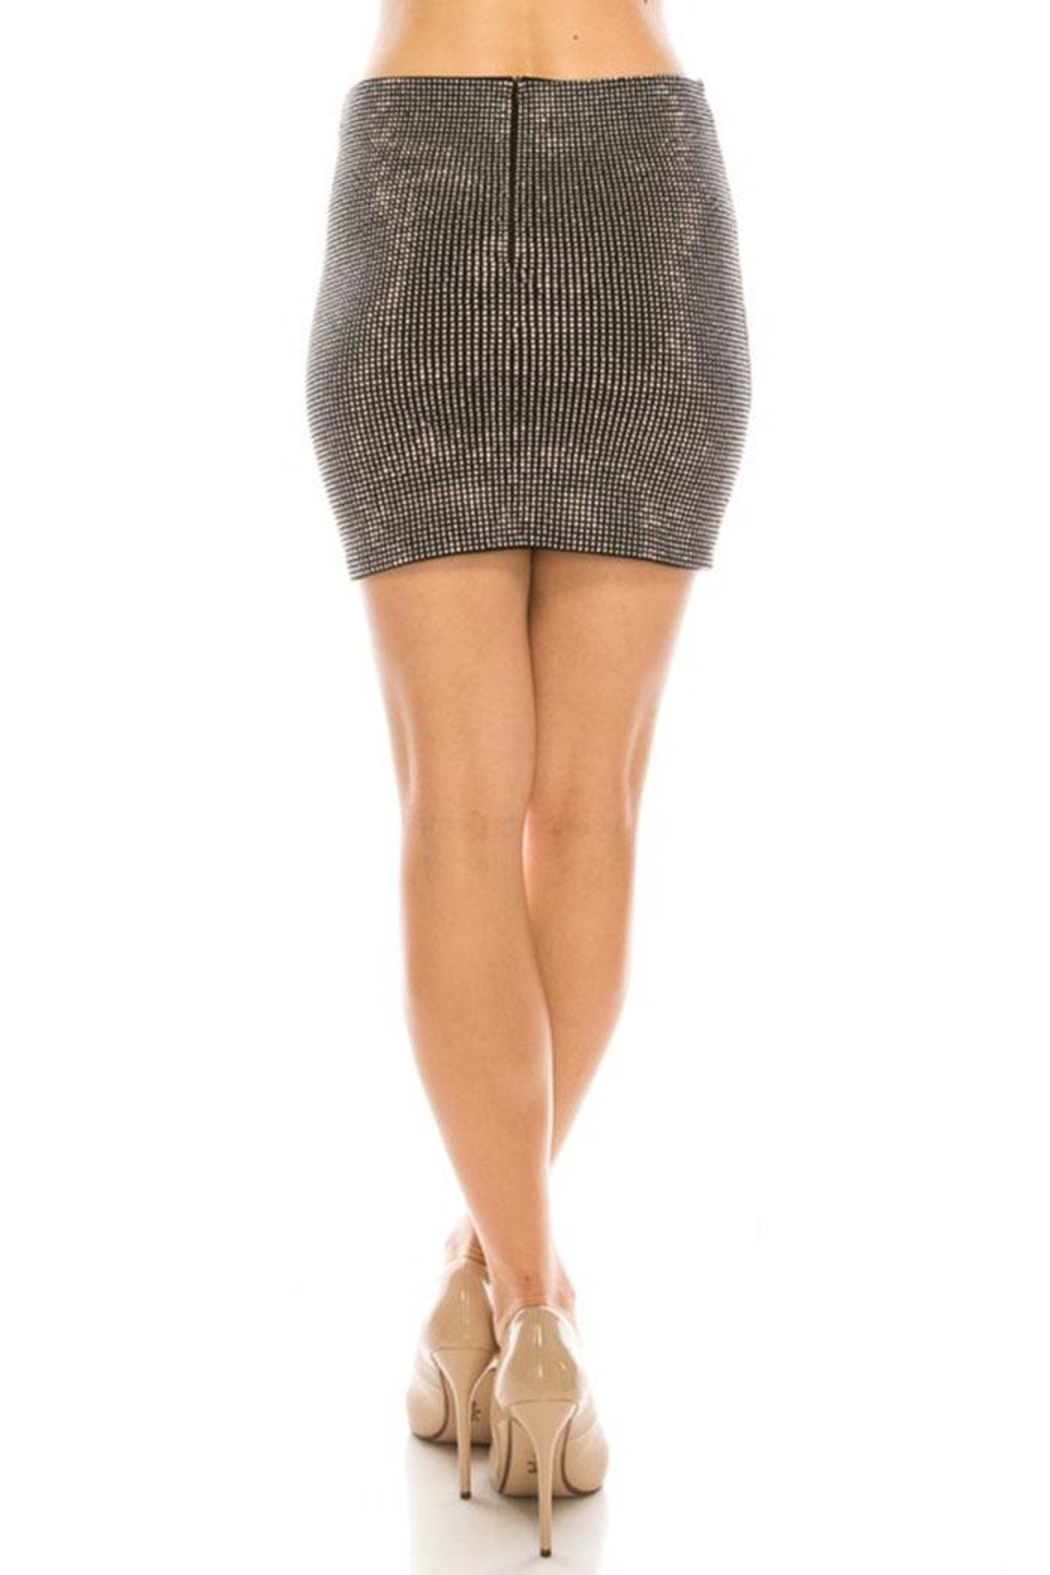 Salt Rhinestone Mini Skirt - Back Cropped Image